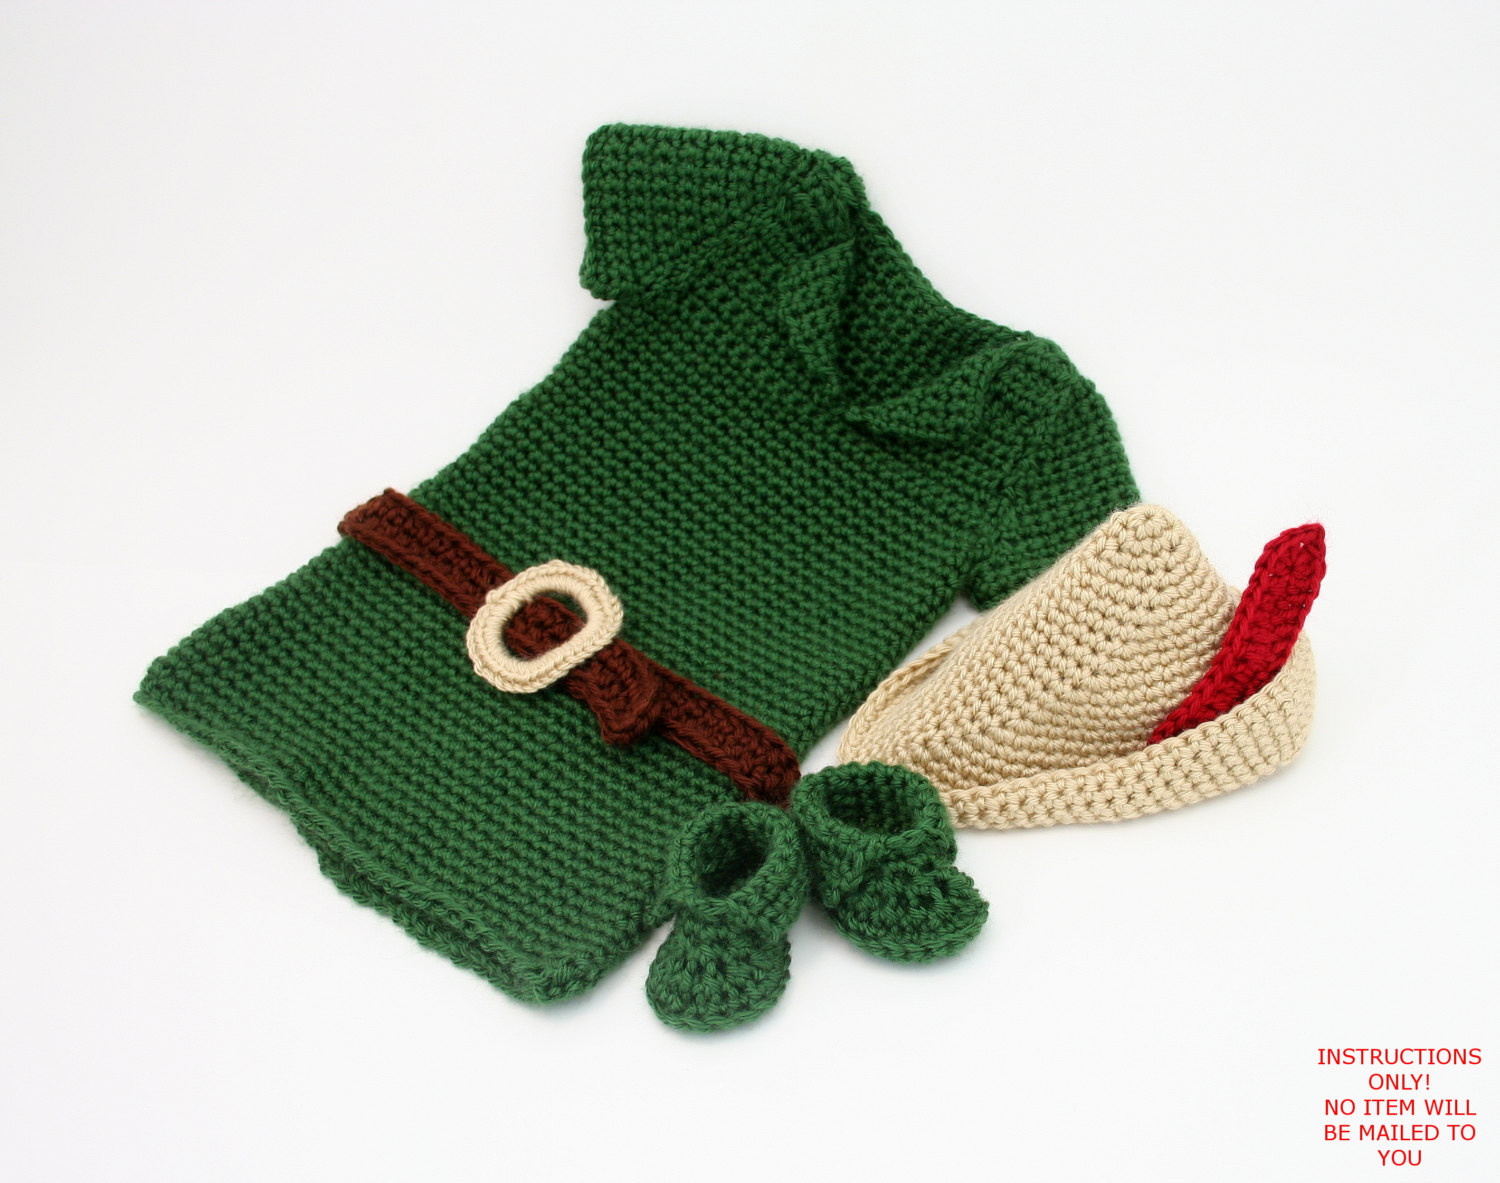 Crochet Baby Outfits Luxury Pdf Digital Pattern Boy Crochet Outfitbaby Robin Hood Costume Of Marvelous 44 Photos Crochet Baby Outfits